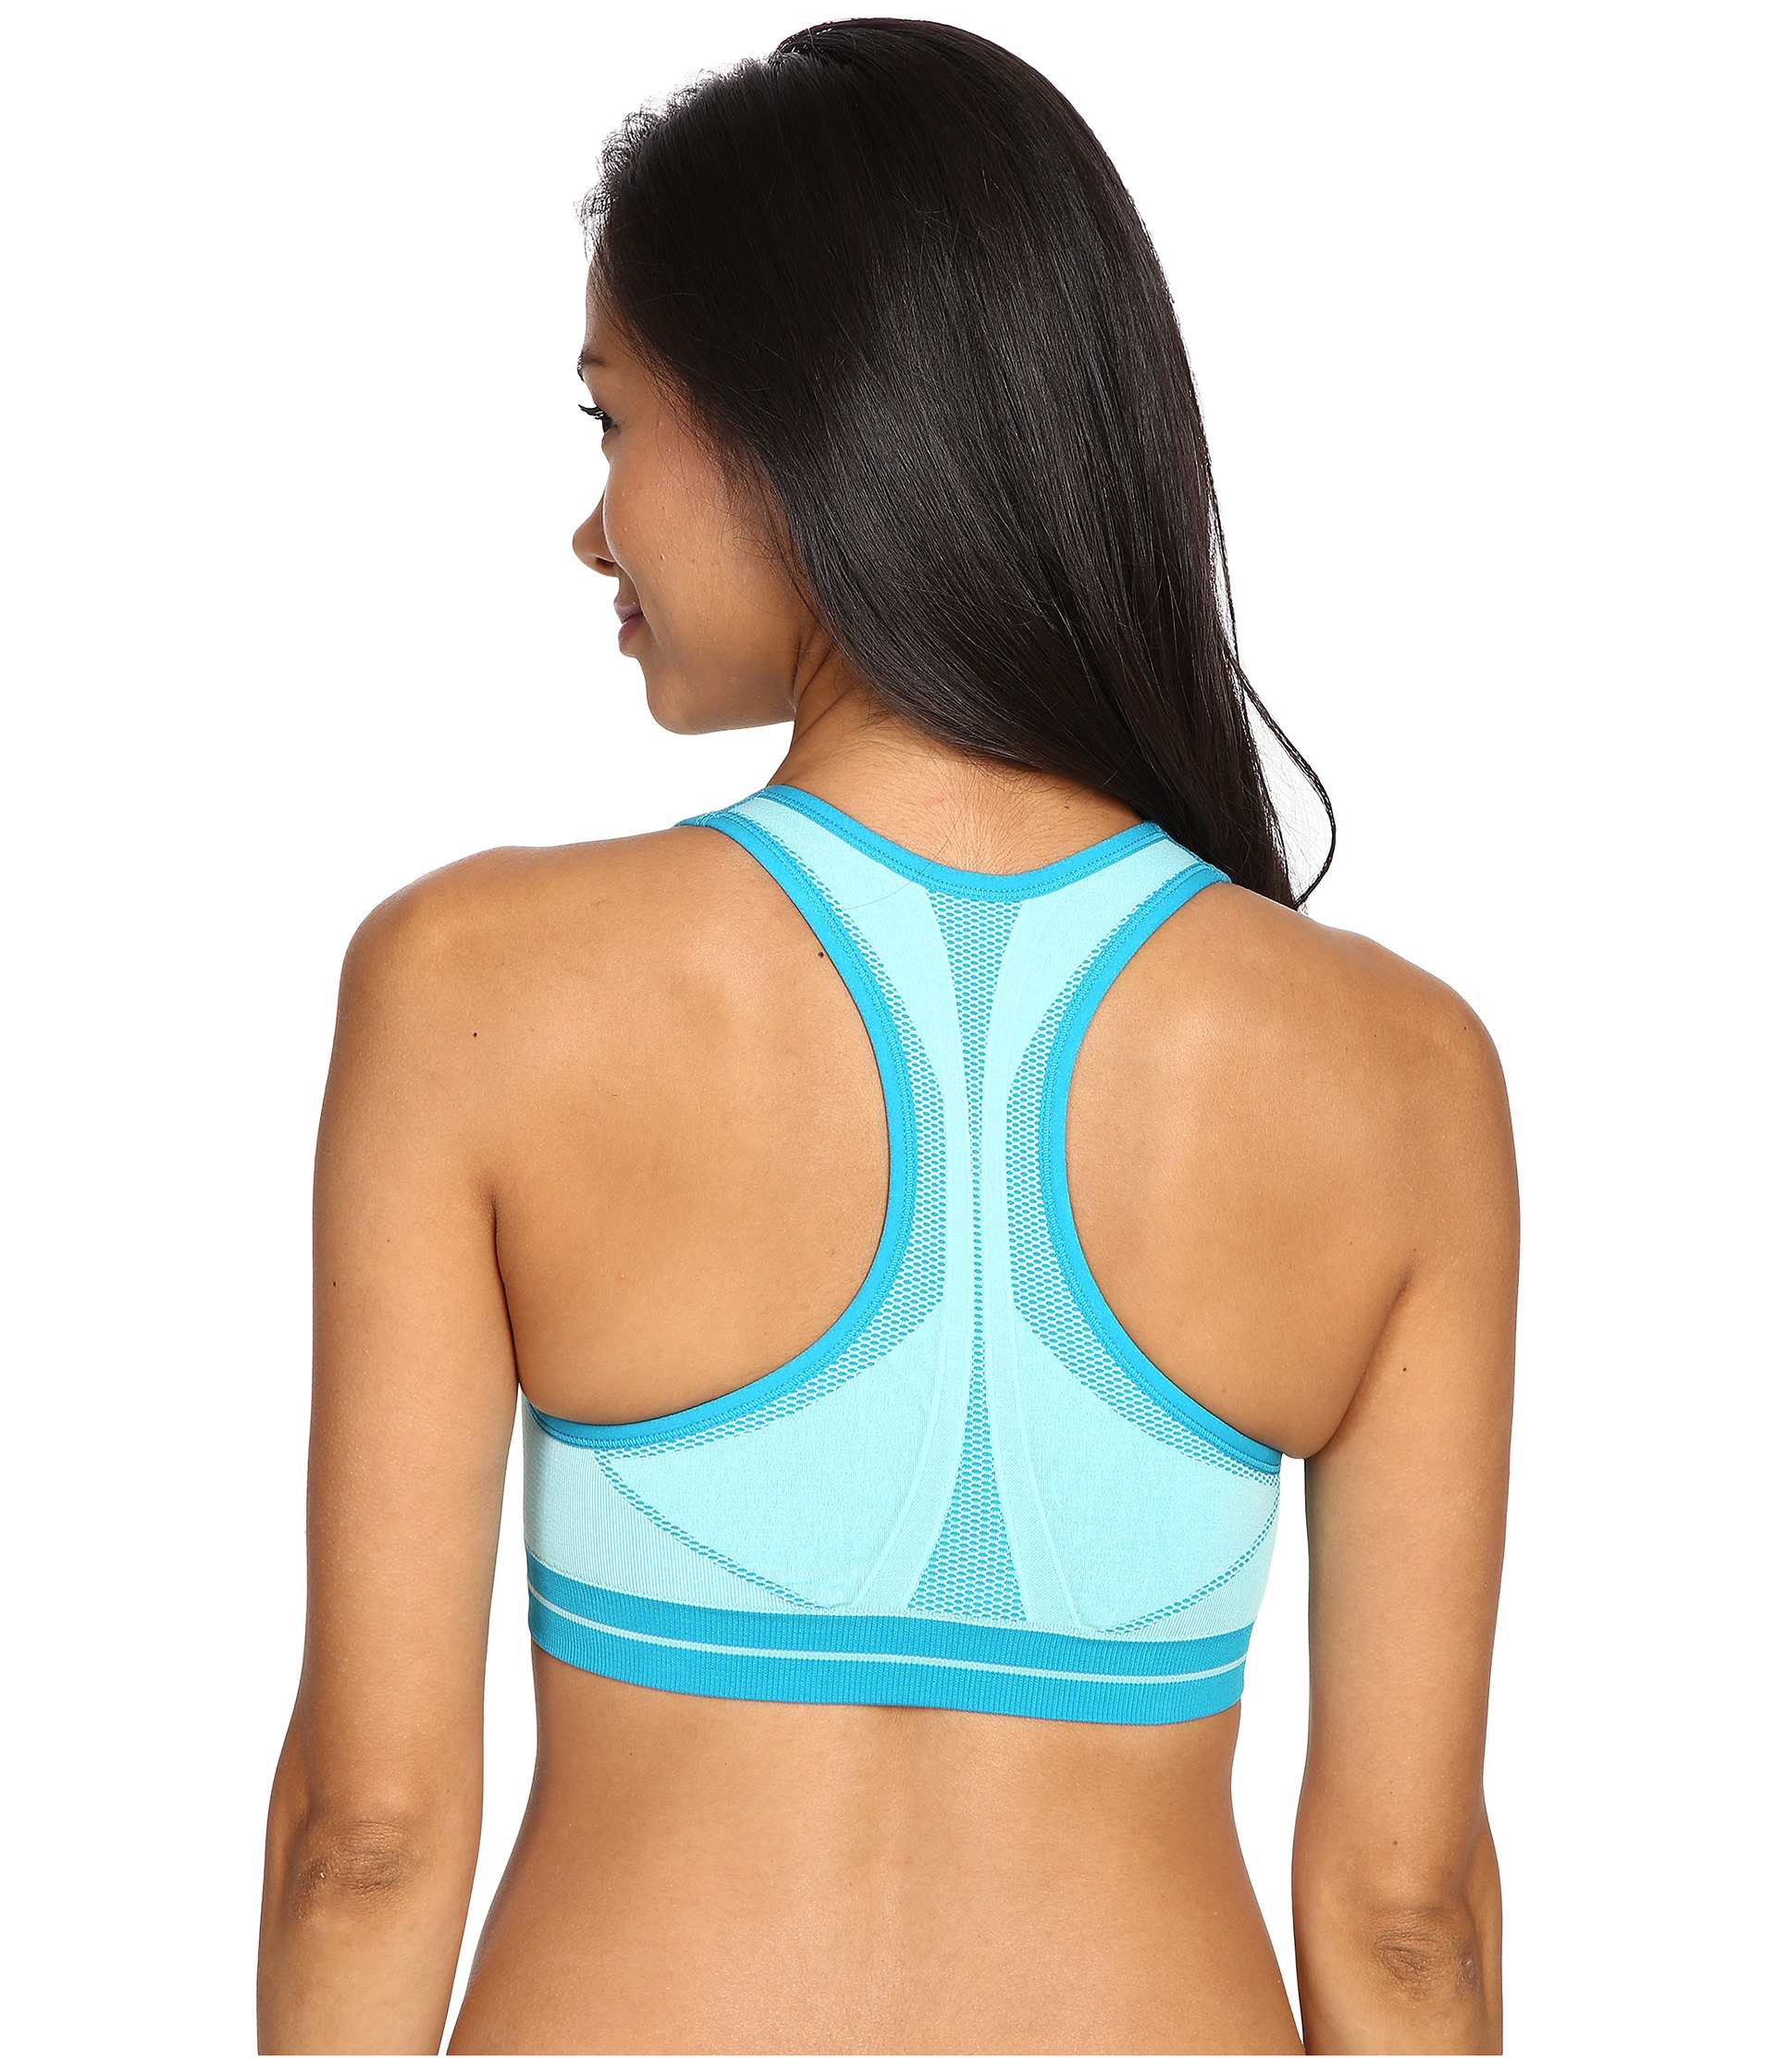 The Zensah Running Sports Bra provides ultimate comfort and performance through its innovative technology and proprietary Zensah Fabric. Sea,mless Sports bra. Seamless design to prevent chafing Moisture wicking and anti-odor Body mapped Racerback design Named One of Runner's World Best Bras for A-B Cups Made in the USA/5().